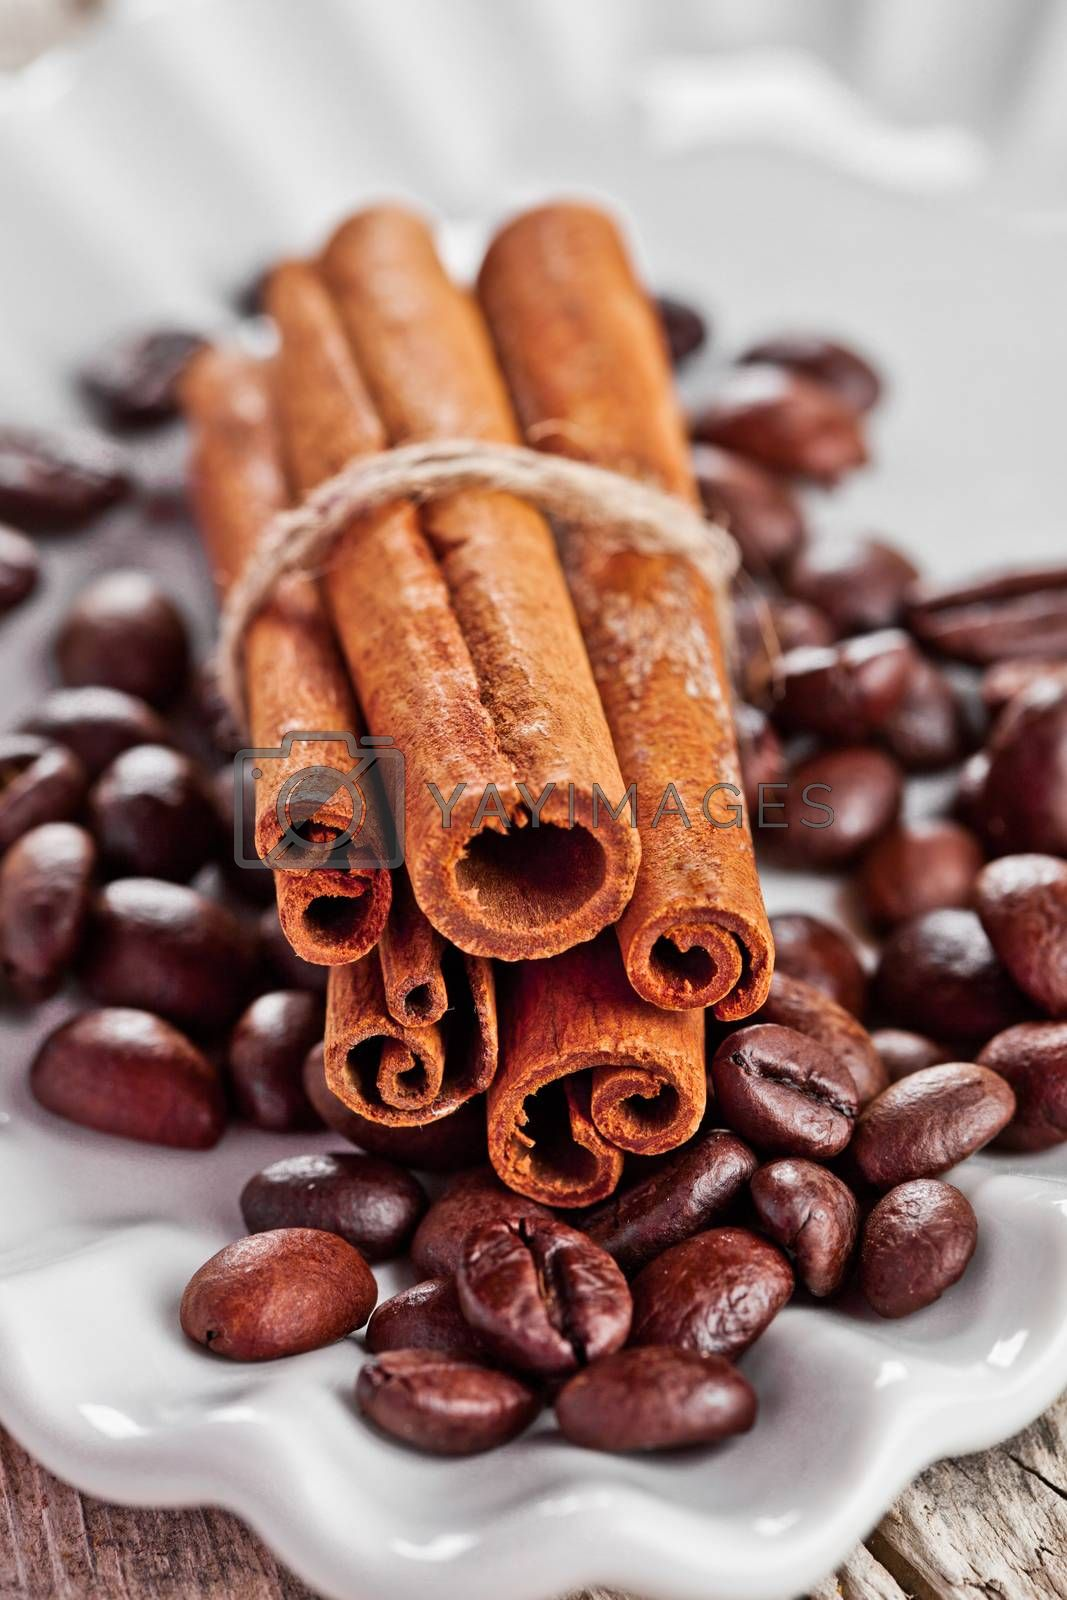 Royalty free image of stack of cinnamon sticks and coffee beans by marylooo